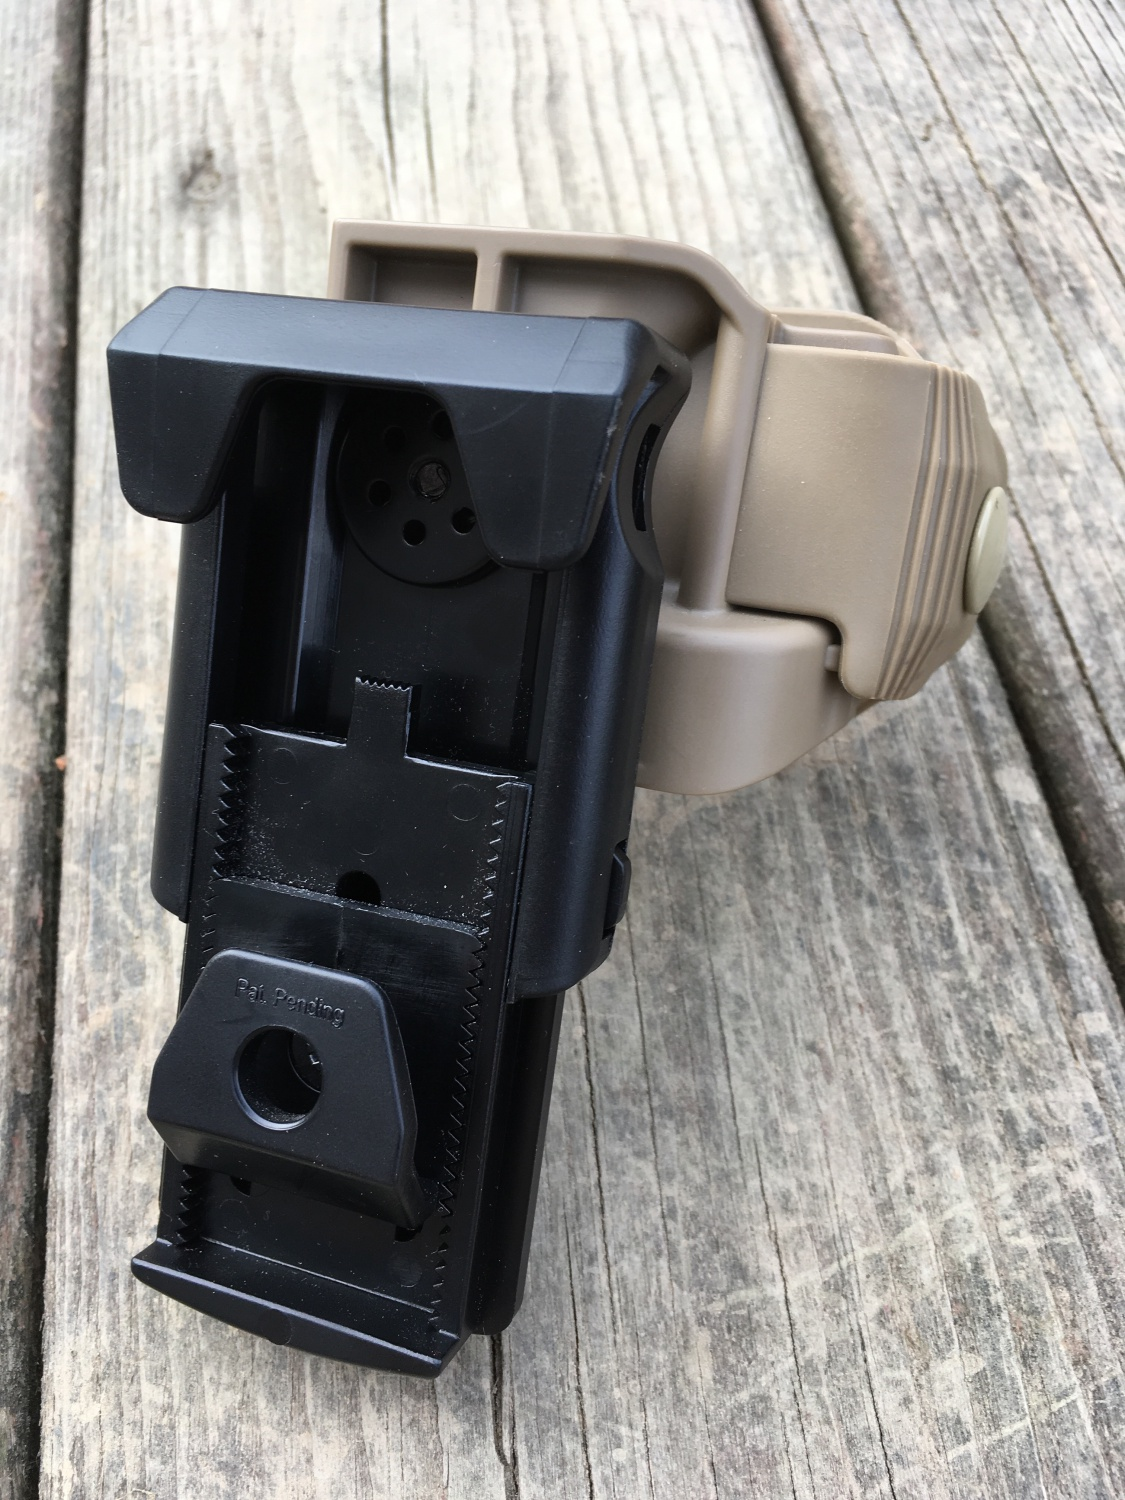 Glock Pistol Lightning Review: Crye Precision Gun Clip Modification